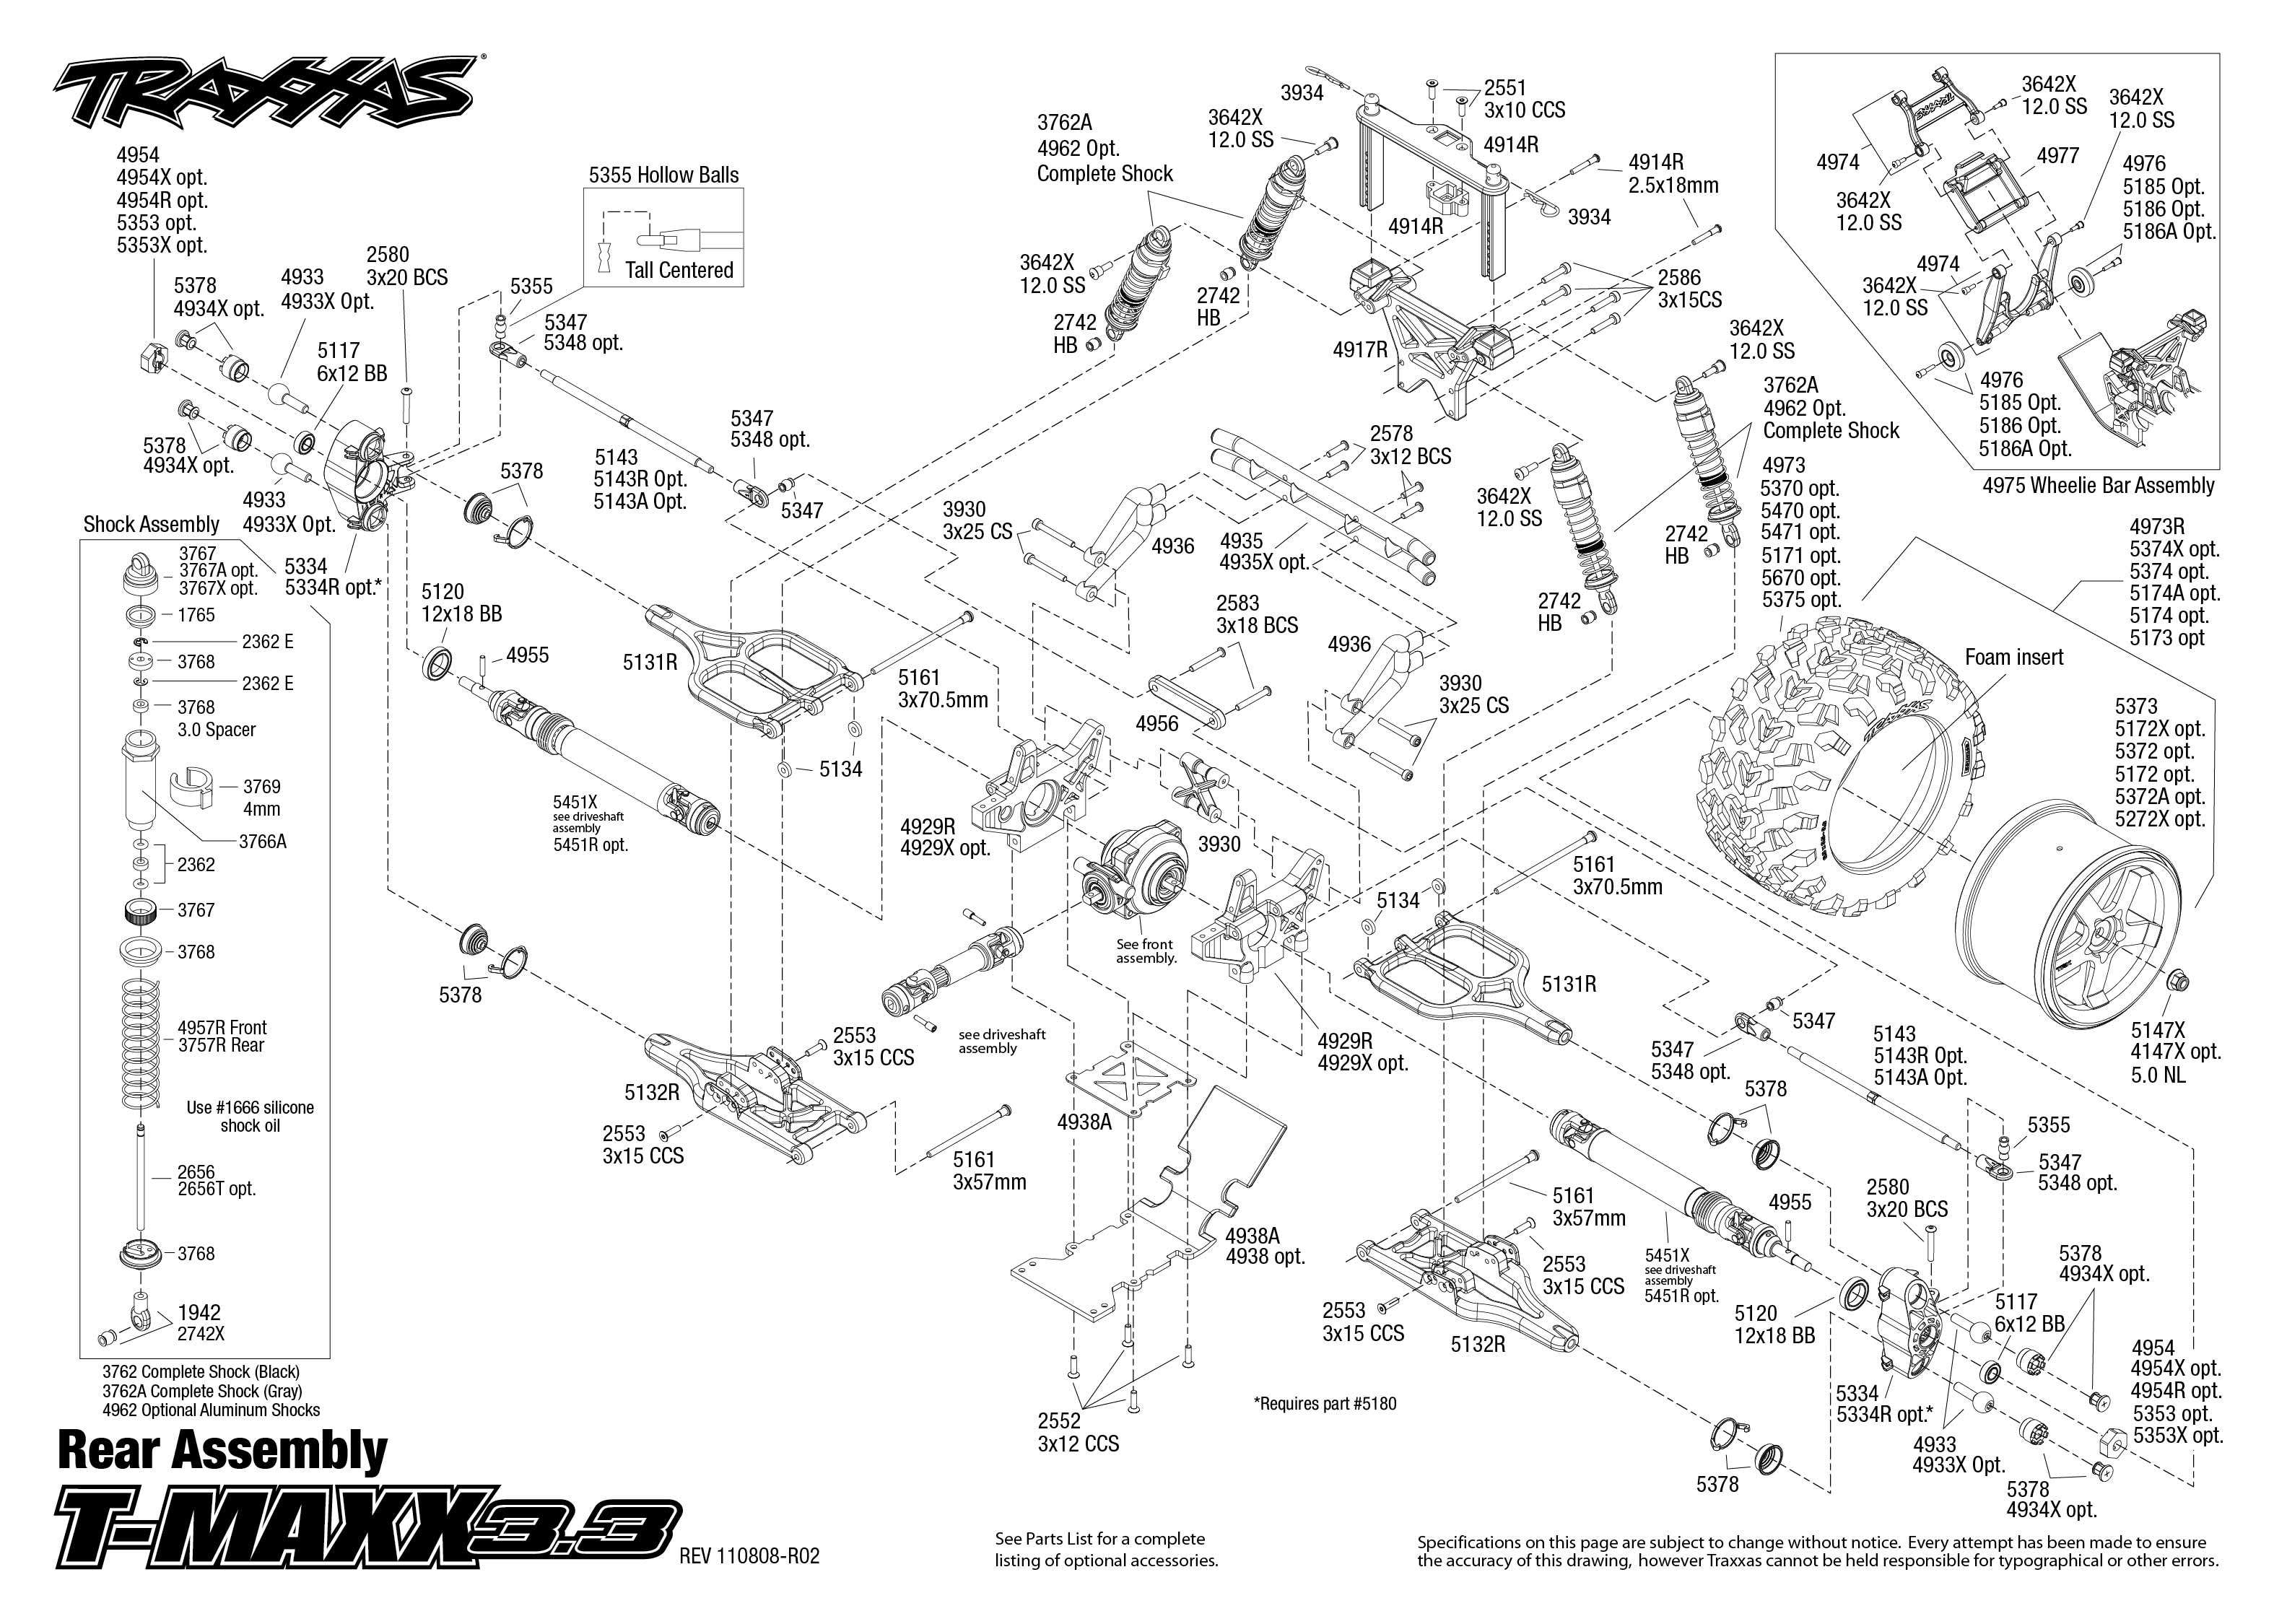 Revo 3 Wiring Diagram Library Traxxas Slash 4x4 Parts Lzk Gallery Likewise T Maxx Enthusiast Diagrams U2022 33 Performance